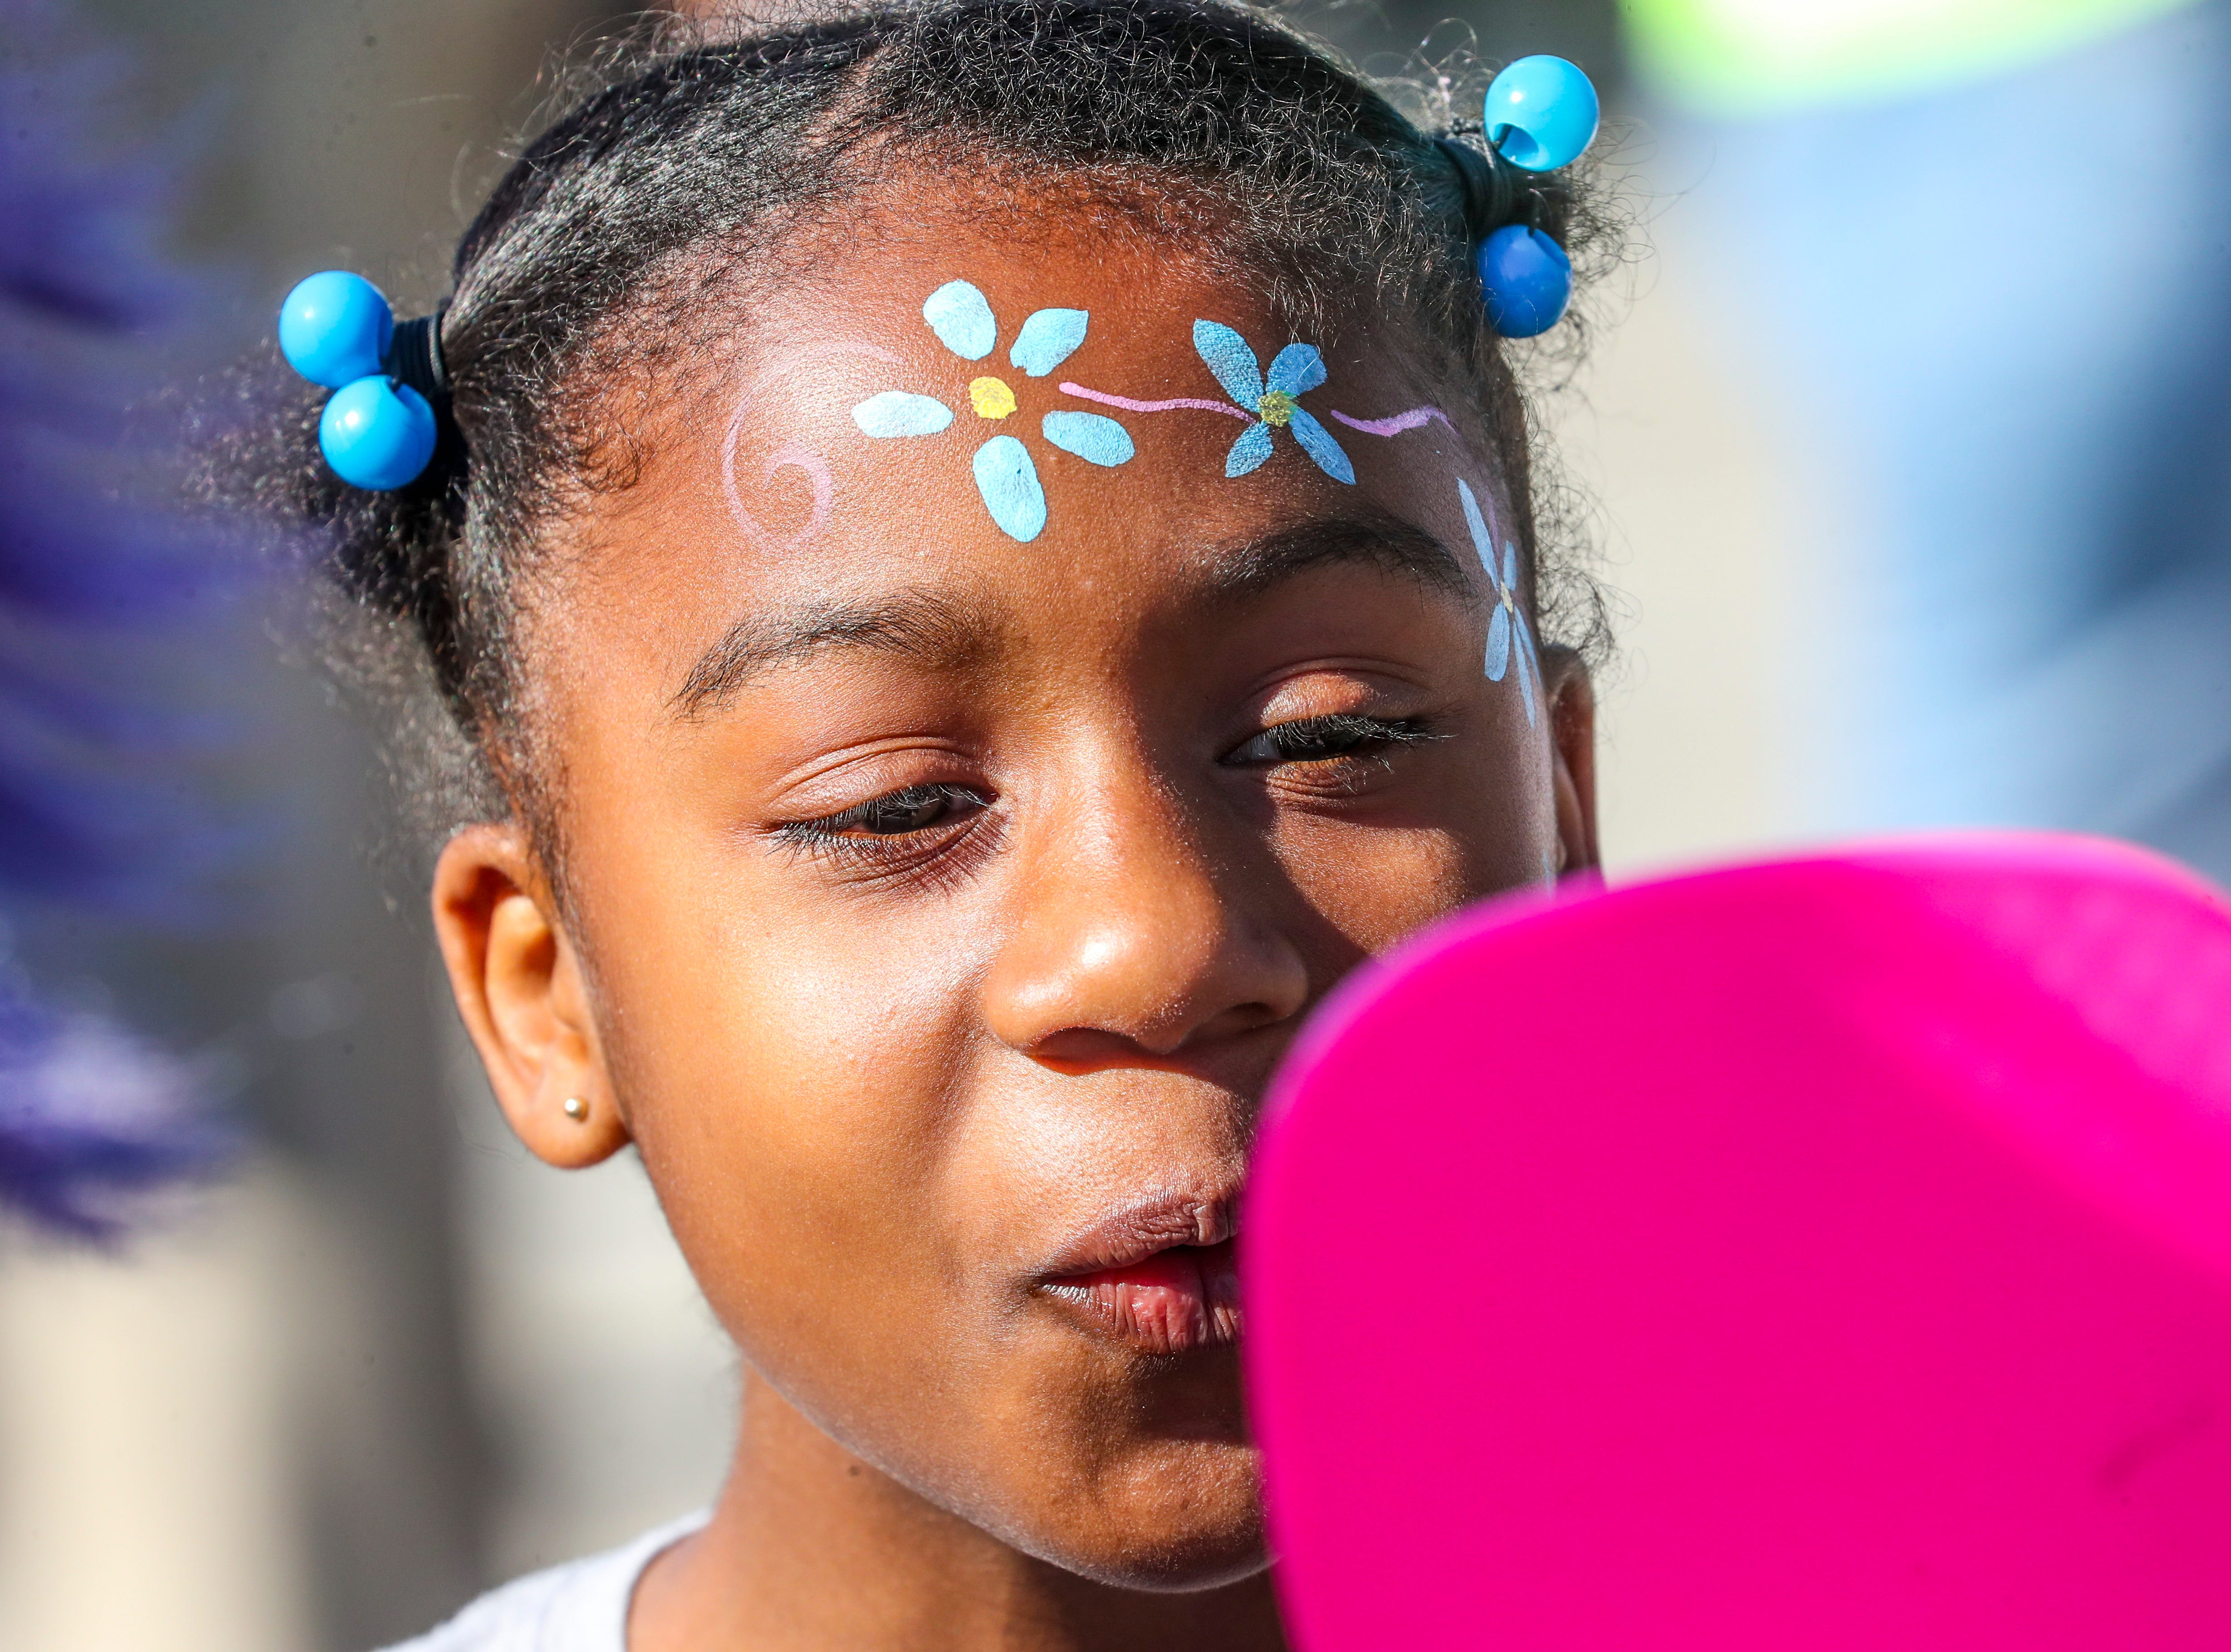 Marissa Darby 9 of Cape Coral reacts to her face paint. The 11th annual WINK Feeds Family hunger walk that supports the Harry Chapin Food Bank of Southwest Florida went off Saturday, January 19, 2019. The walk was held at Miromar Outlets in Estero, FL, and they did a 2 mile walk around the mall.